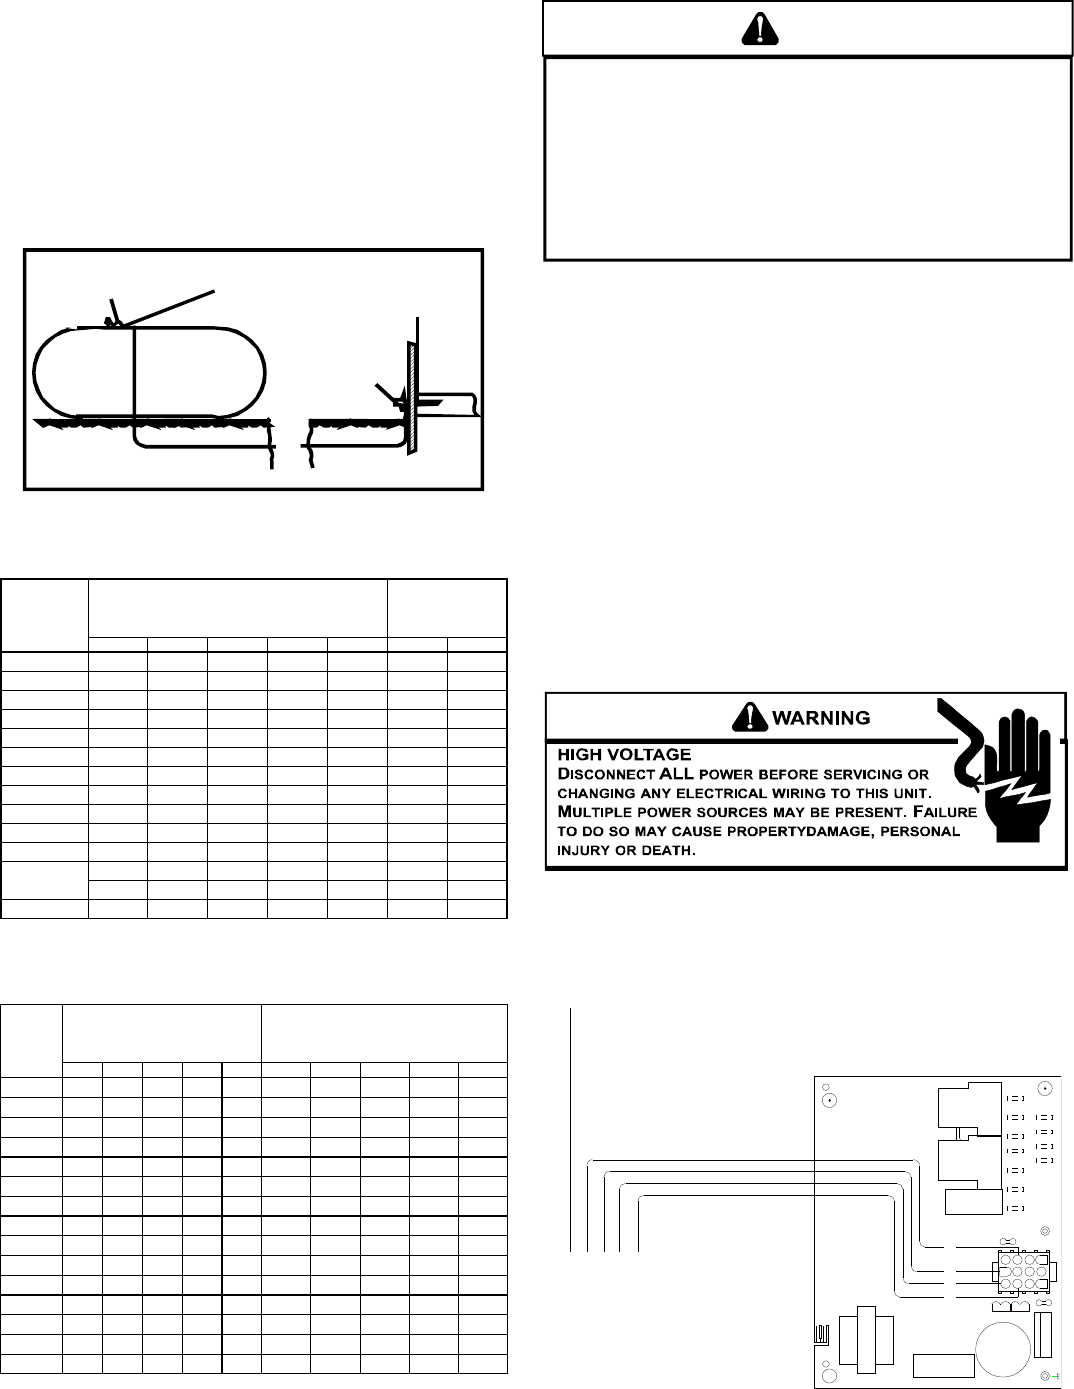 Goodman Mfg Gpg13 Users Manual 67 Comments To Miswiring A 120volt Rv Outlet With 240volts 8